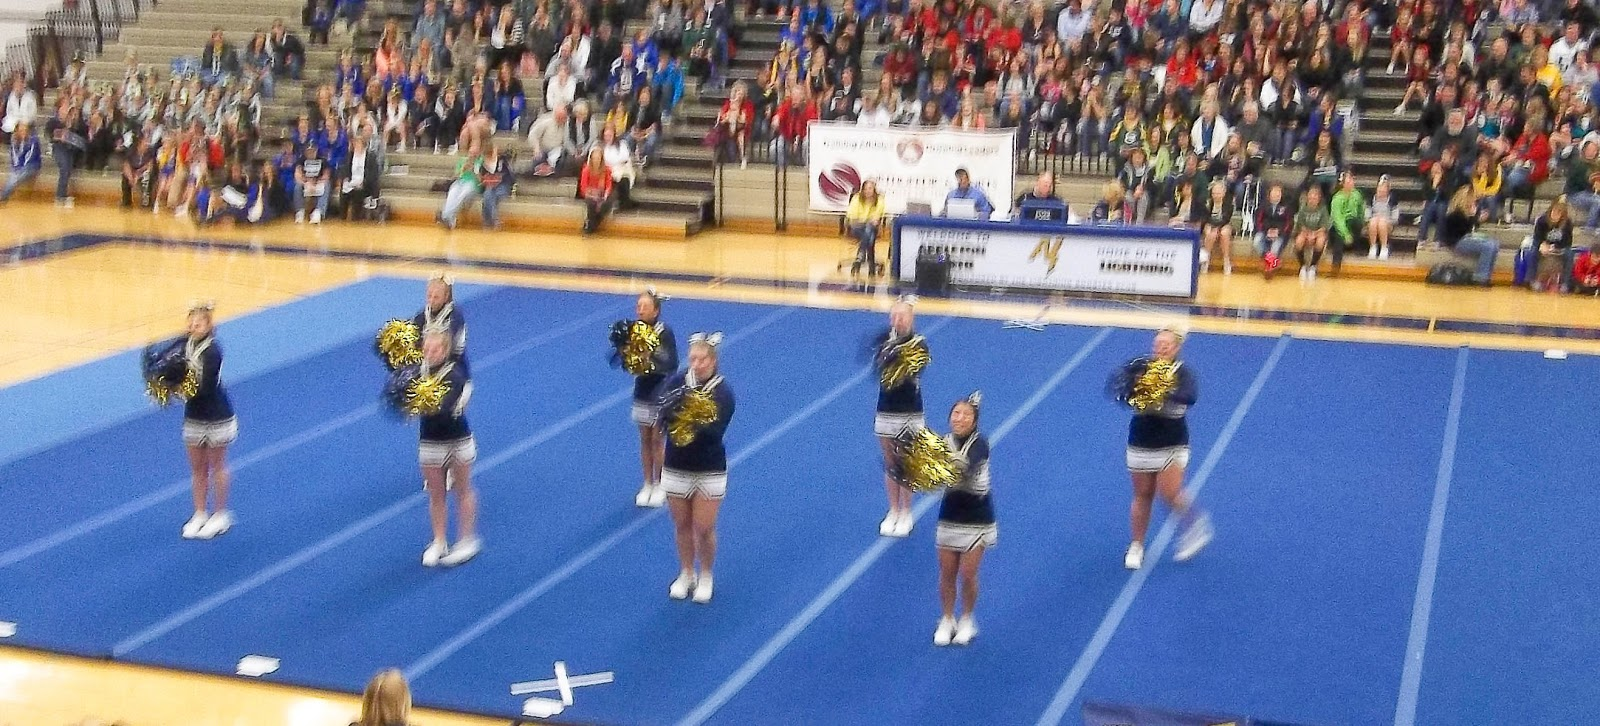 life with my boys cheer perfection isn t that the name of a t v